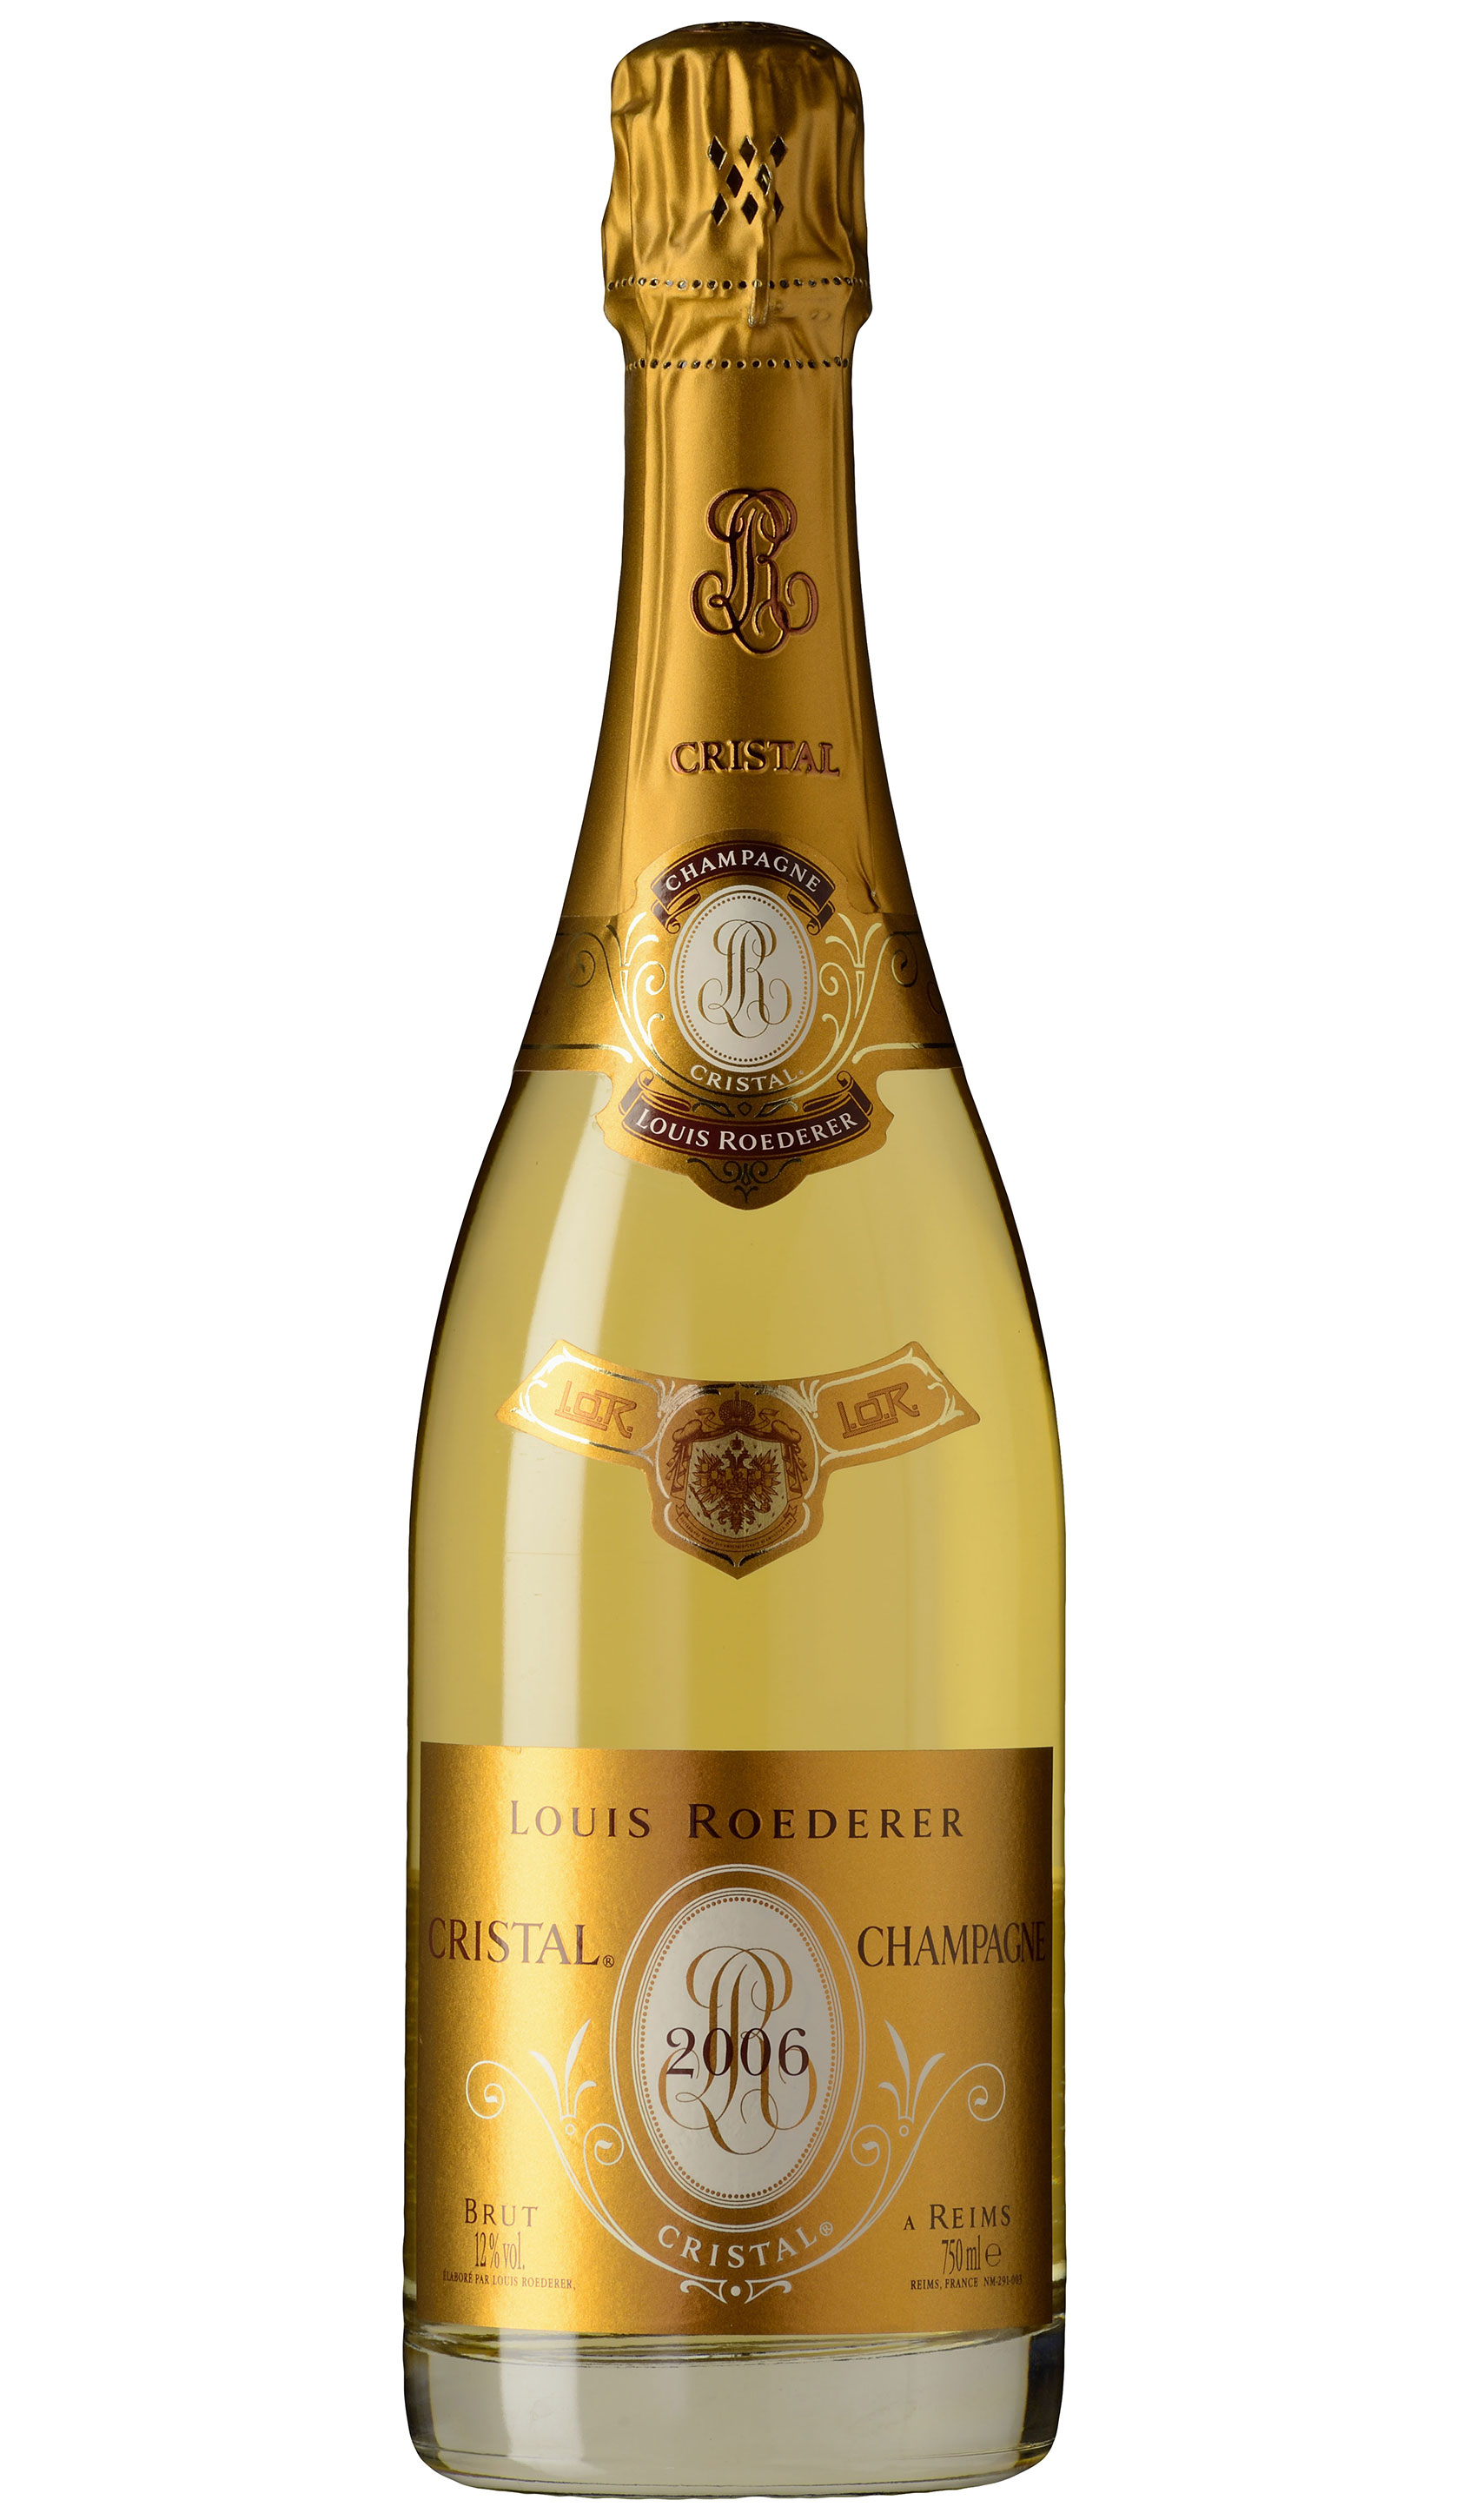 Champagne Cristal, Louis Roederer  2012